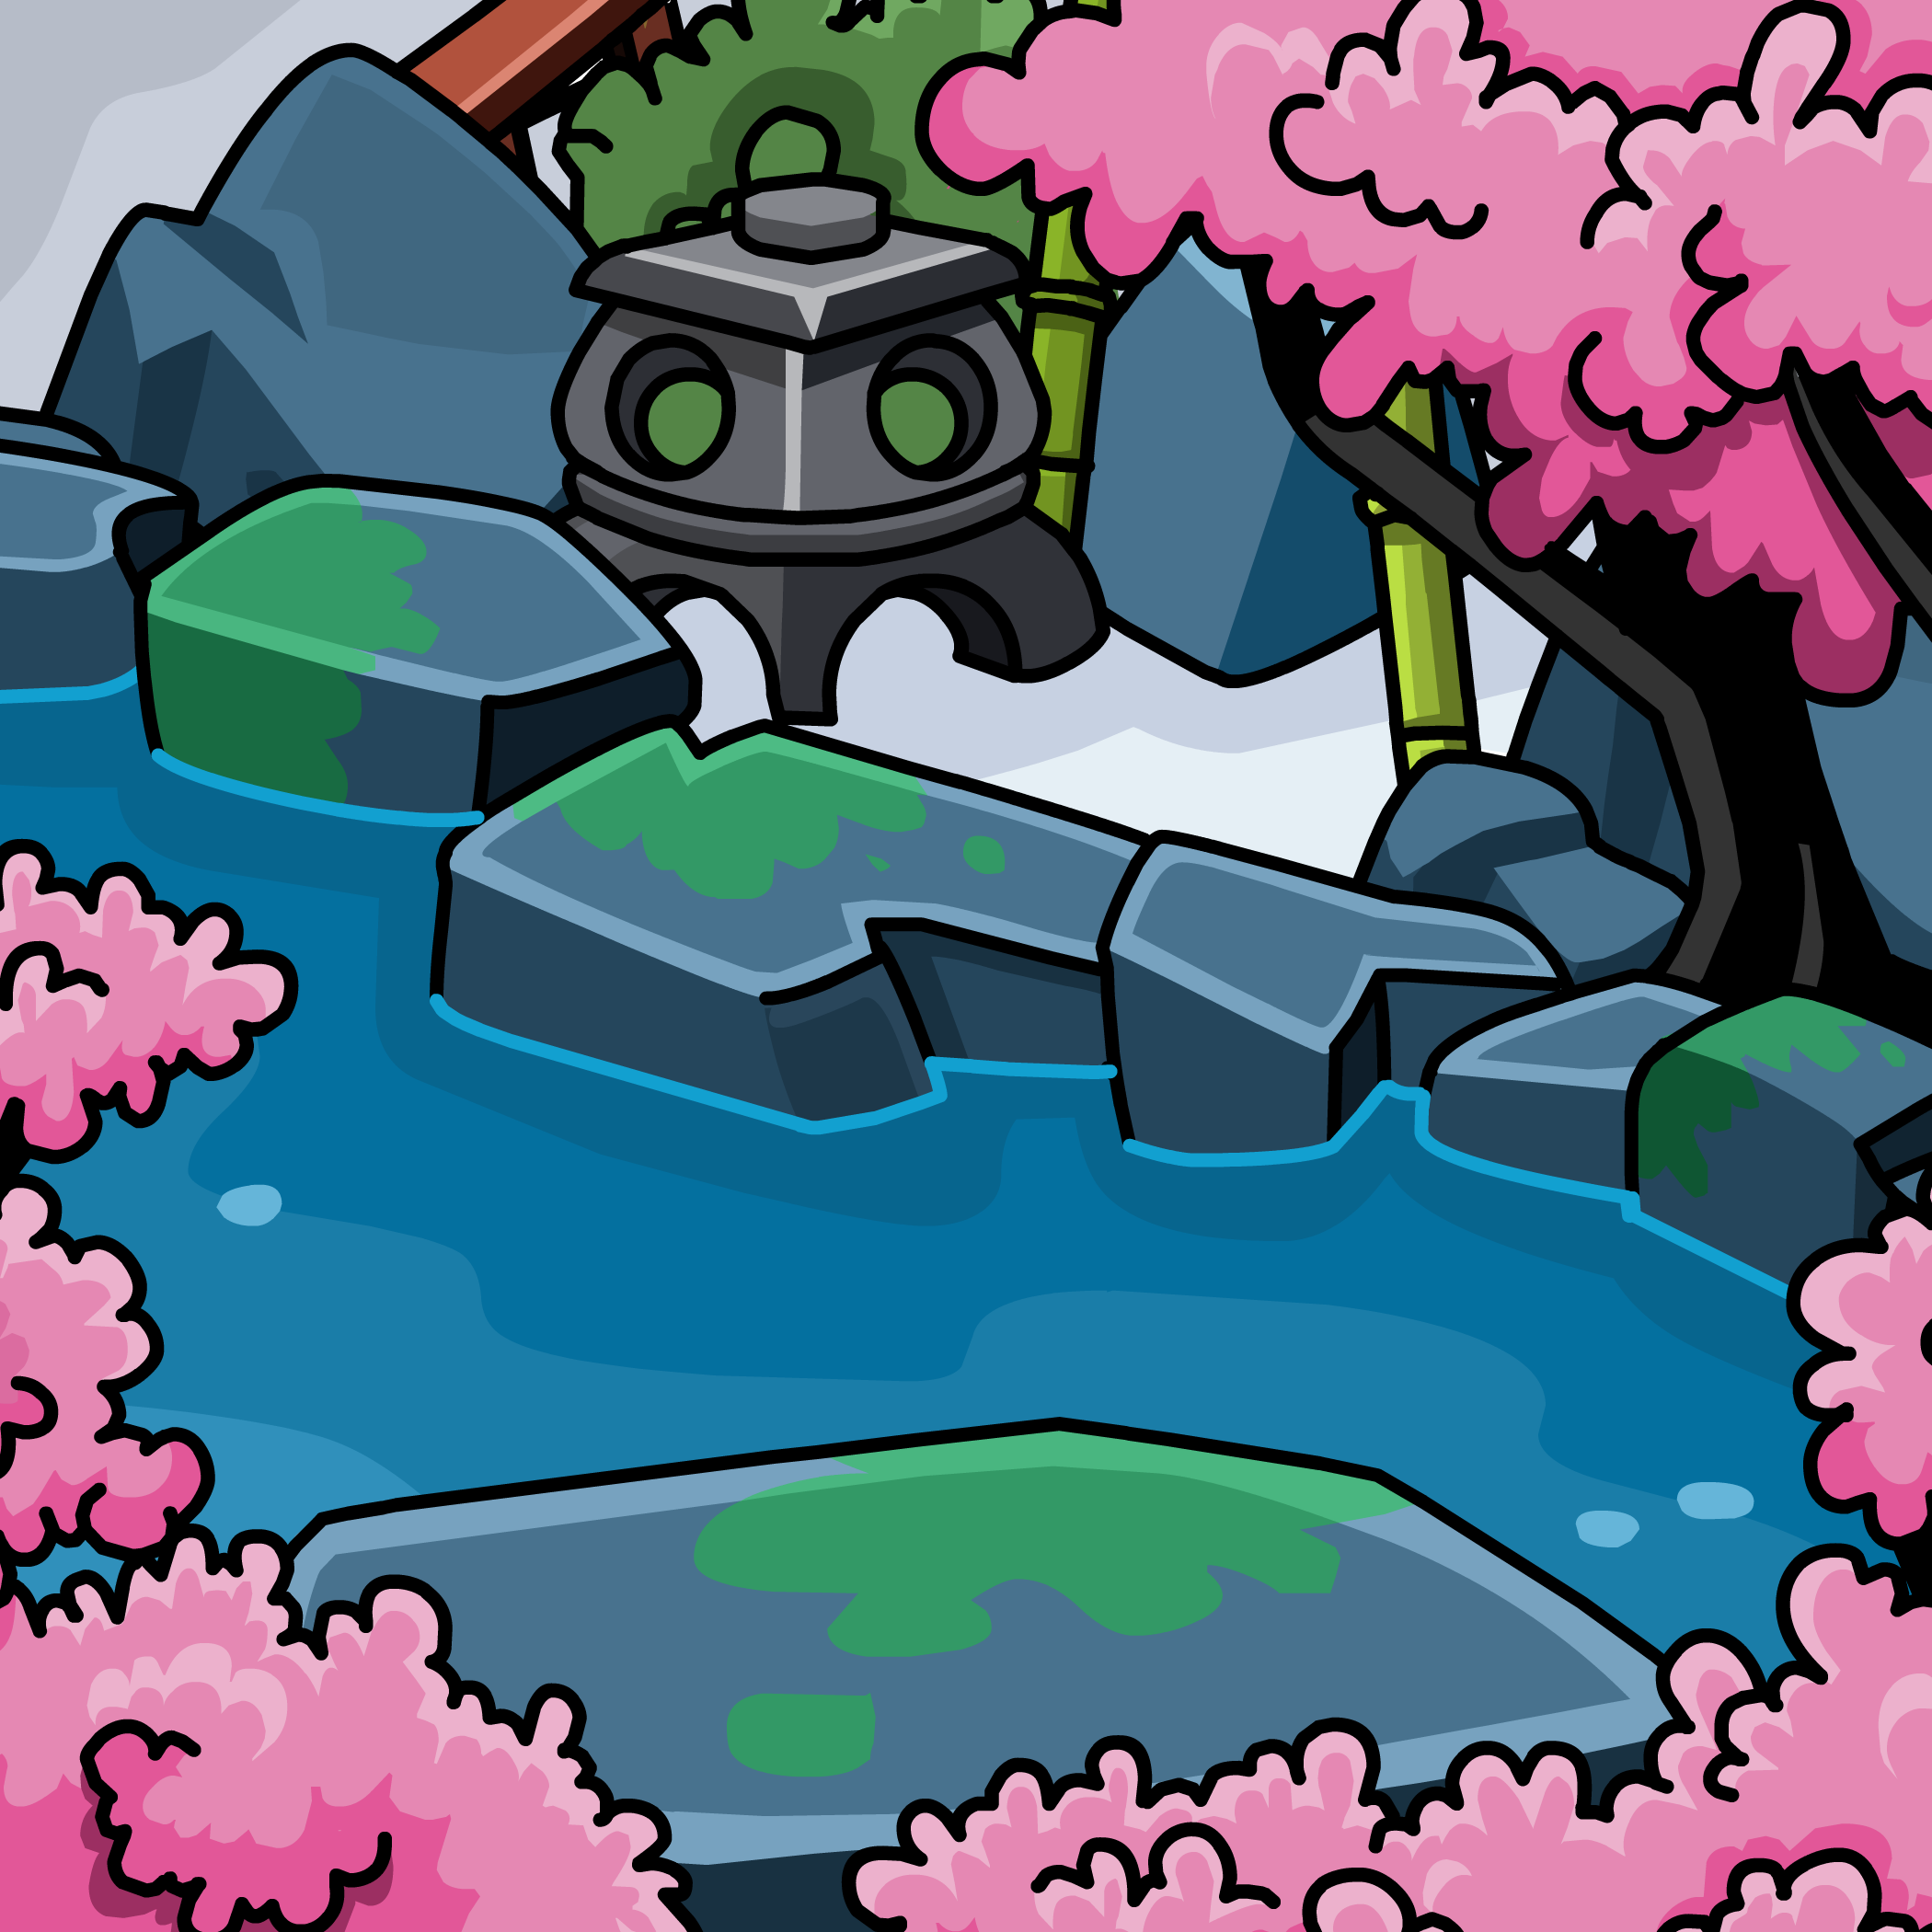 Cherry Blossom Orchard Background